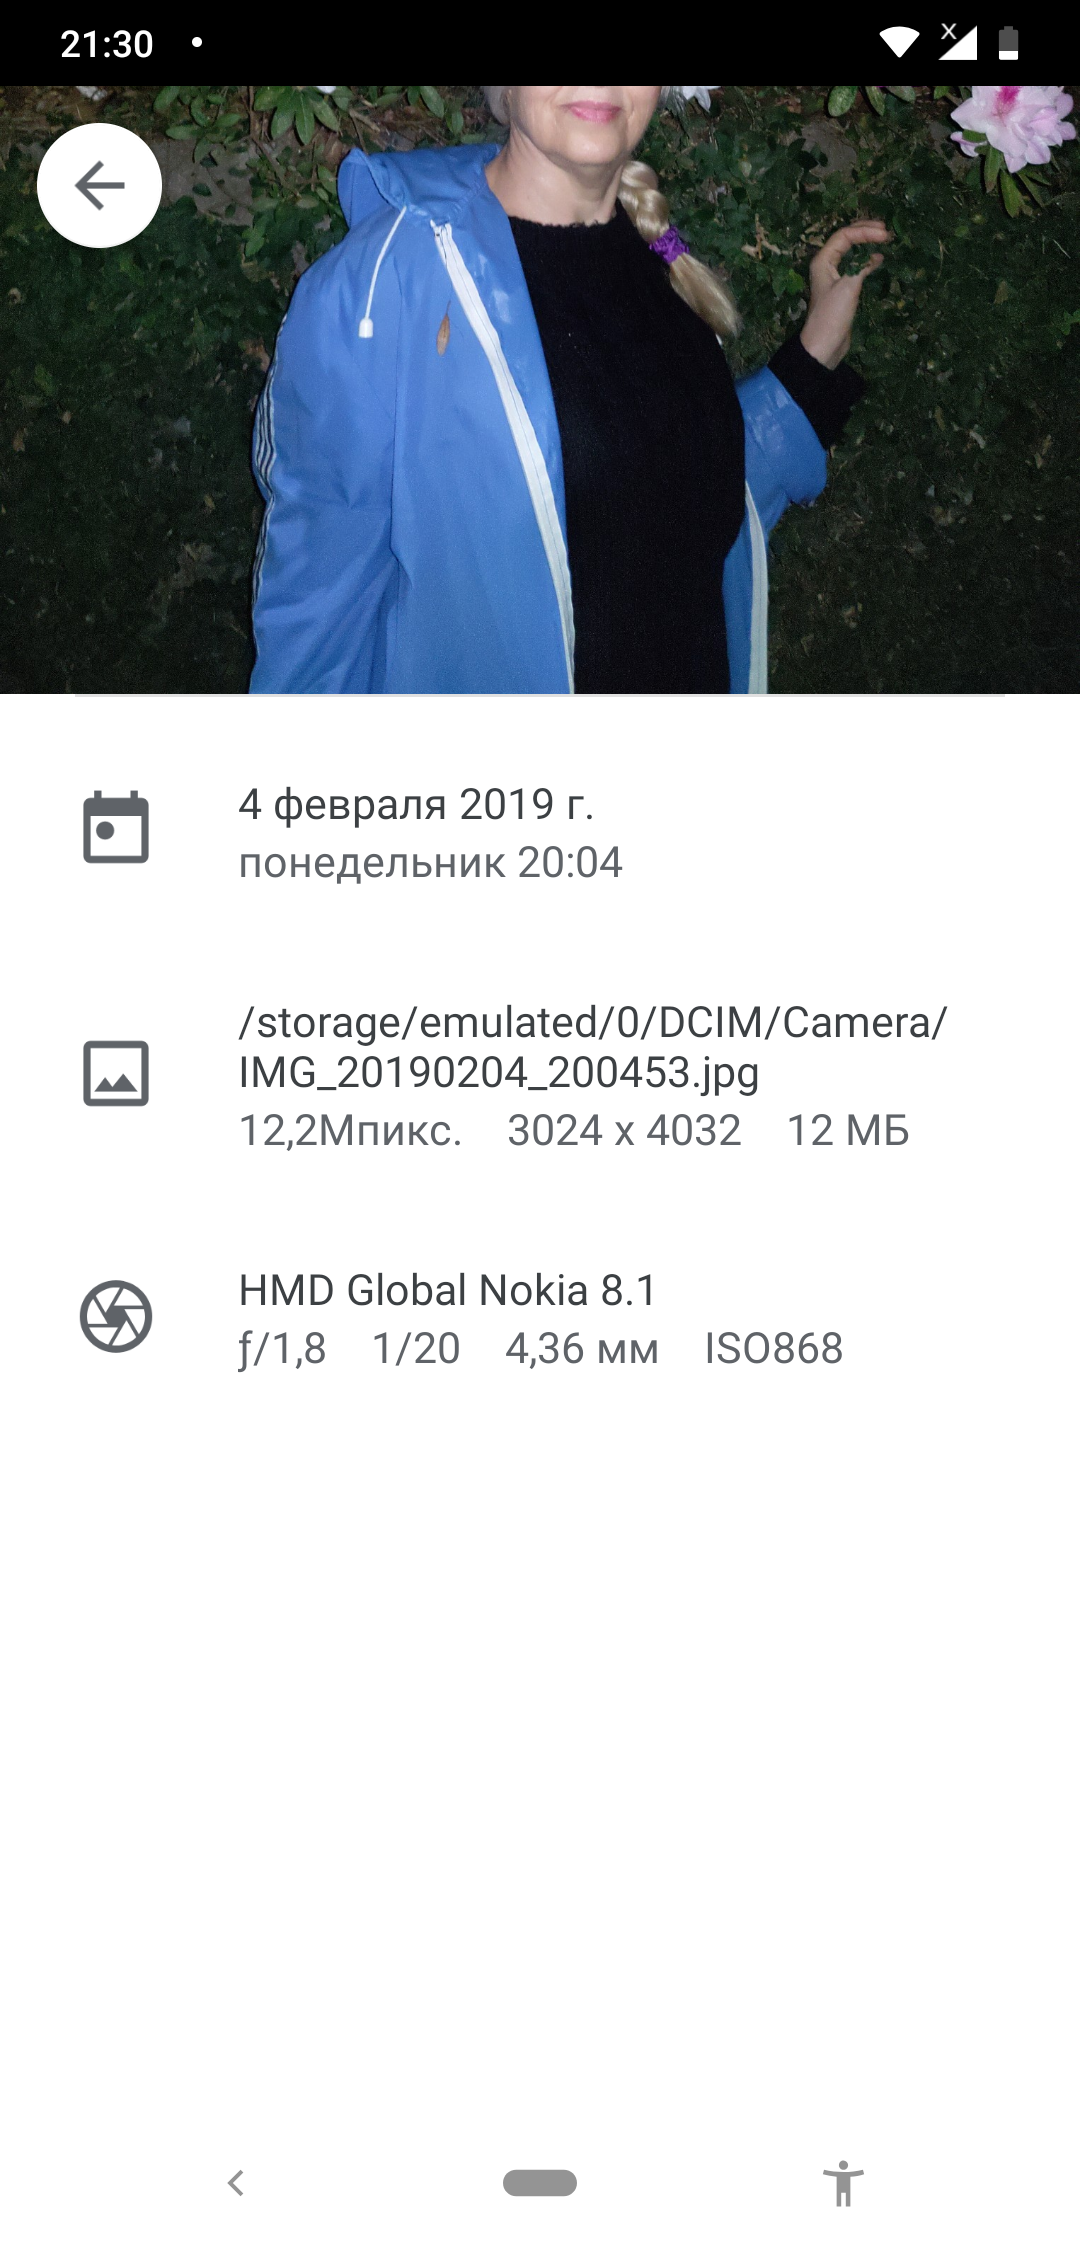 Google camera — Nokia phones community